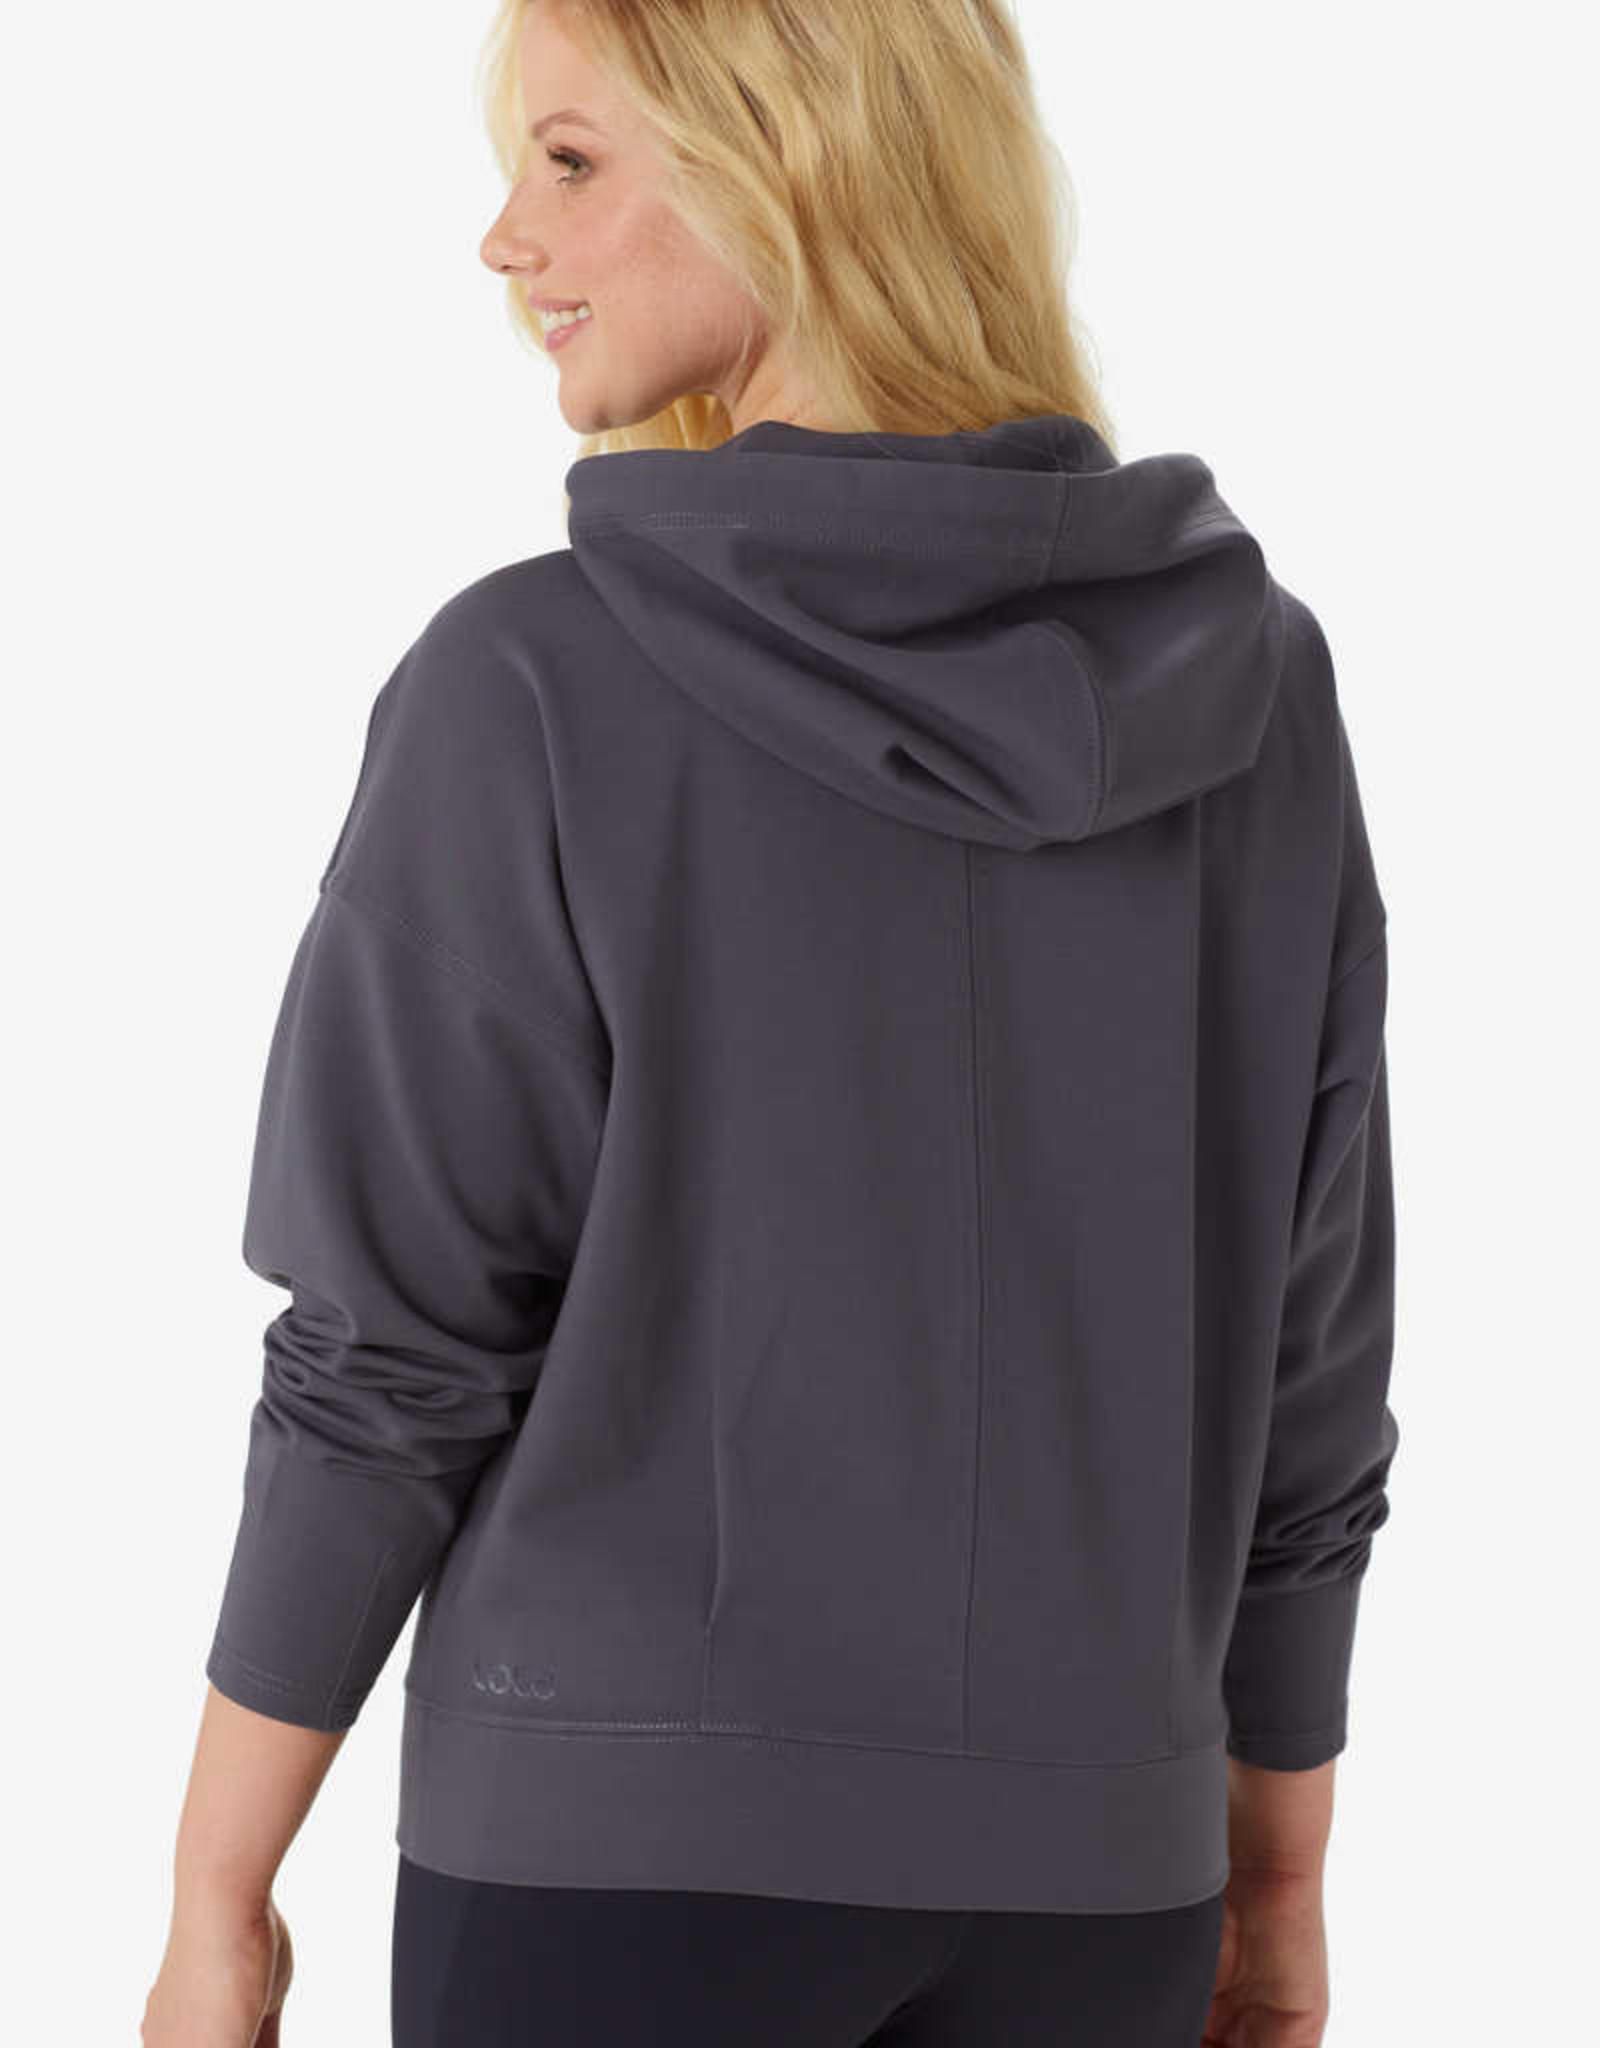 Lole Mindset Pullover Hoodie